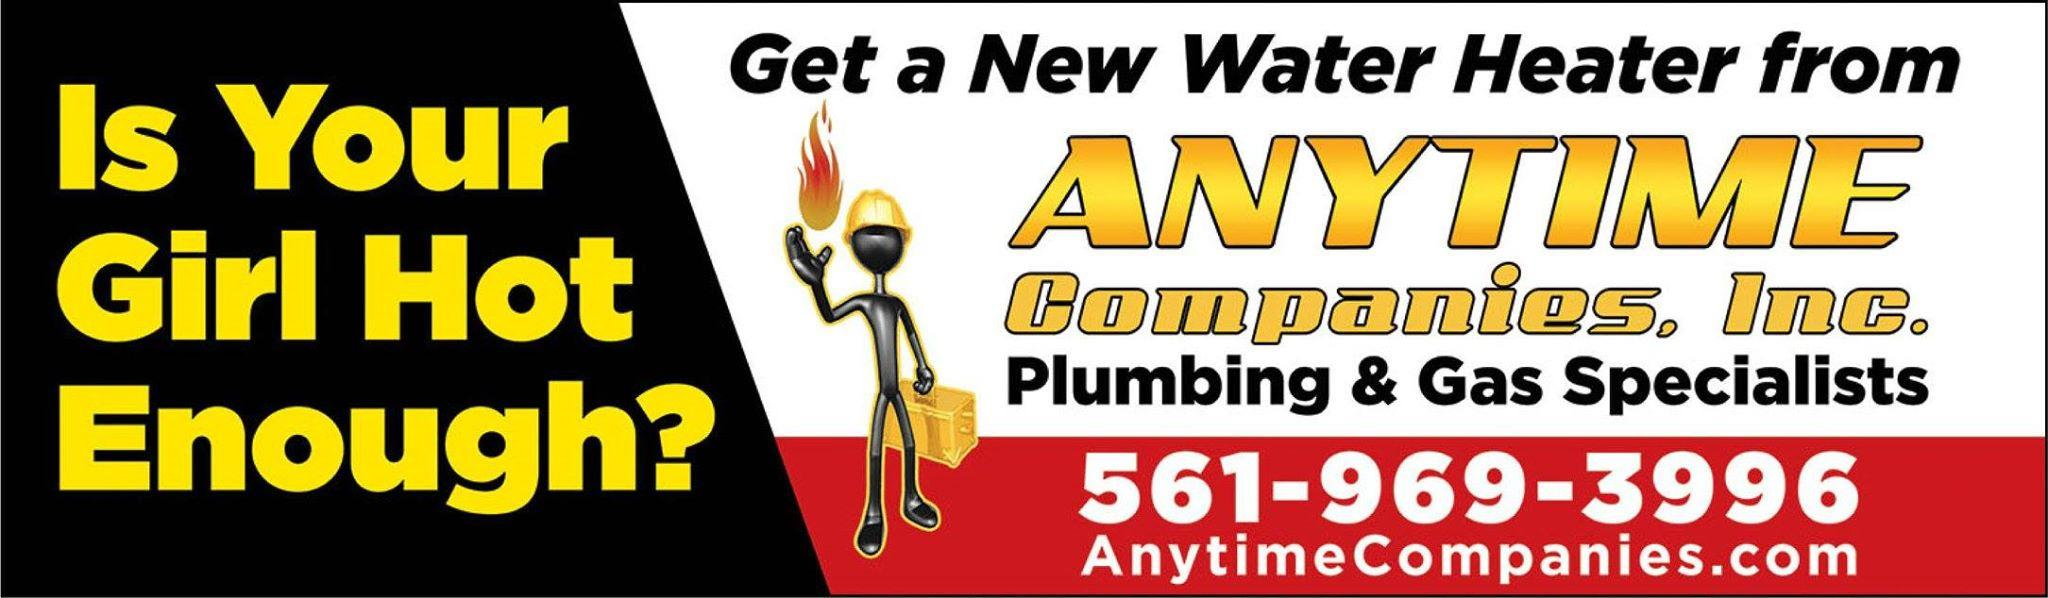 Anytime Plumbing and Gas Services, Inc. image 10